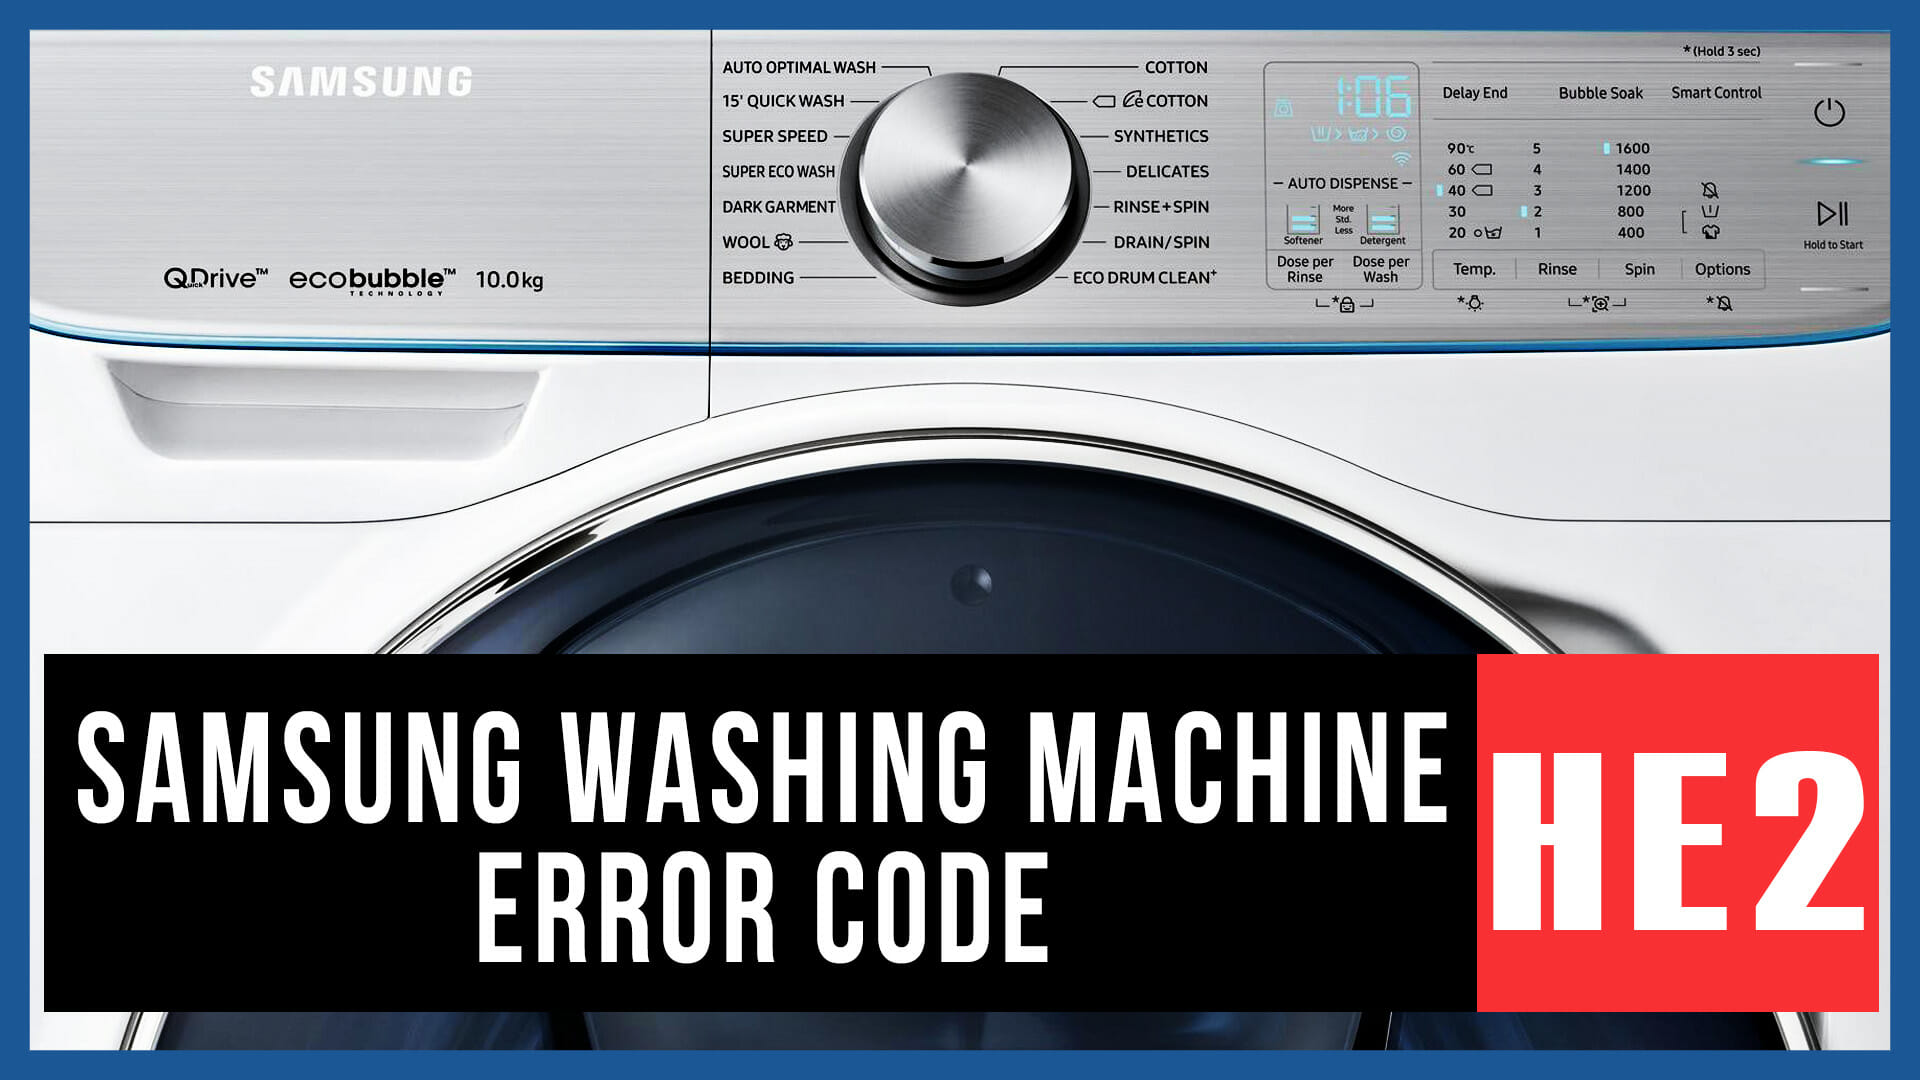 Samsung Washer Error Code He2 Causes How Fix Problem